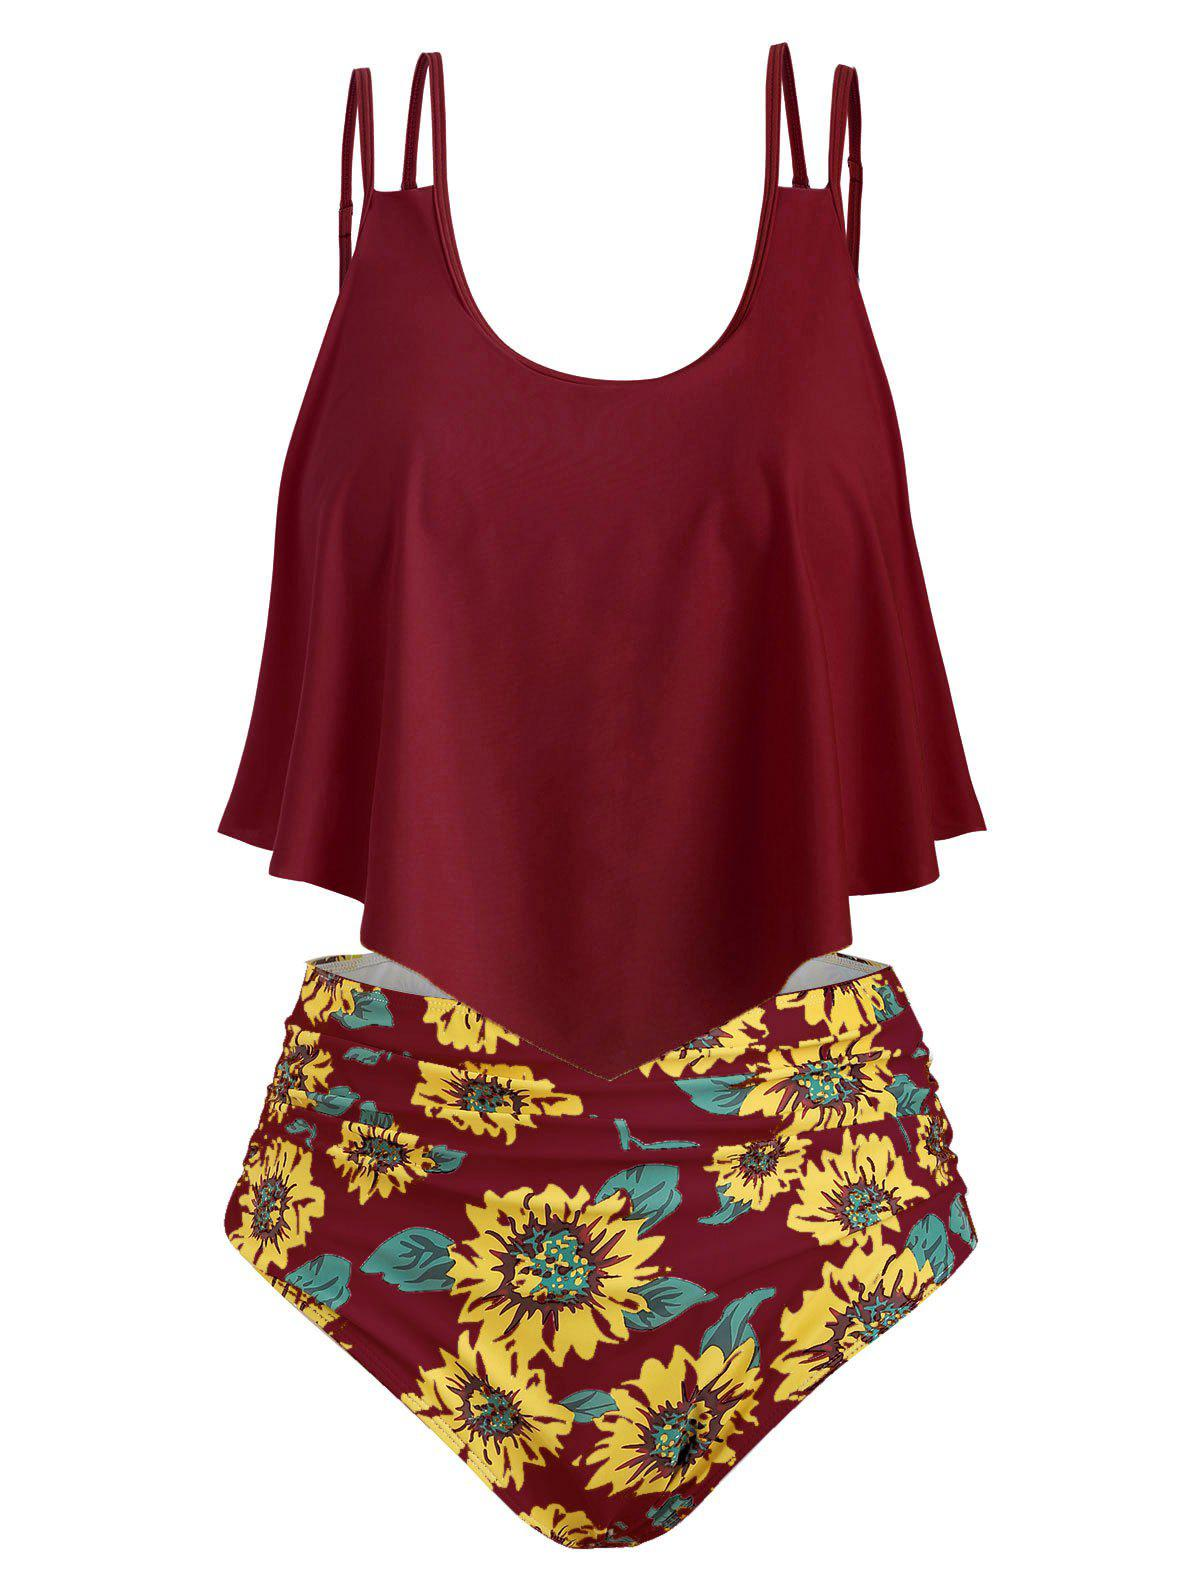 Sunflower Contrast Overlay Plus Size Tankini Set - RED WINE 1X